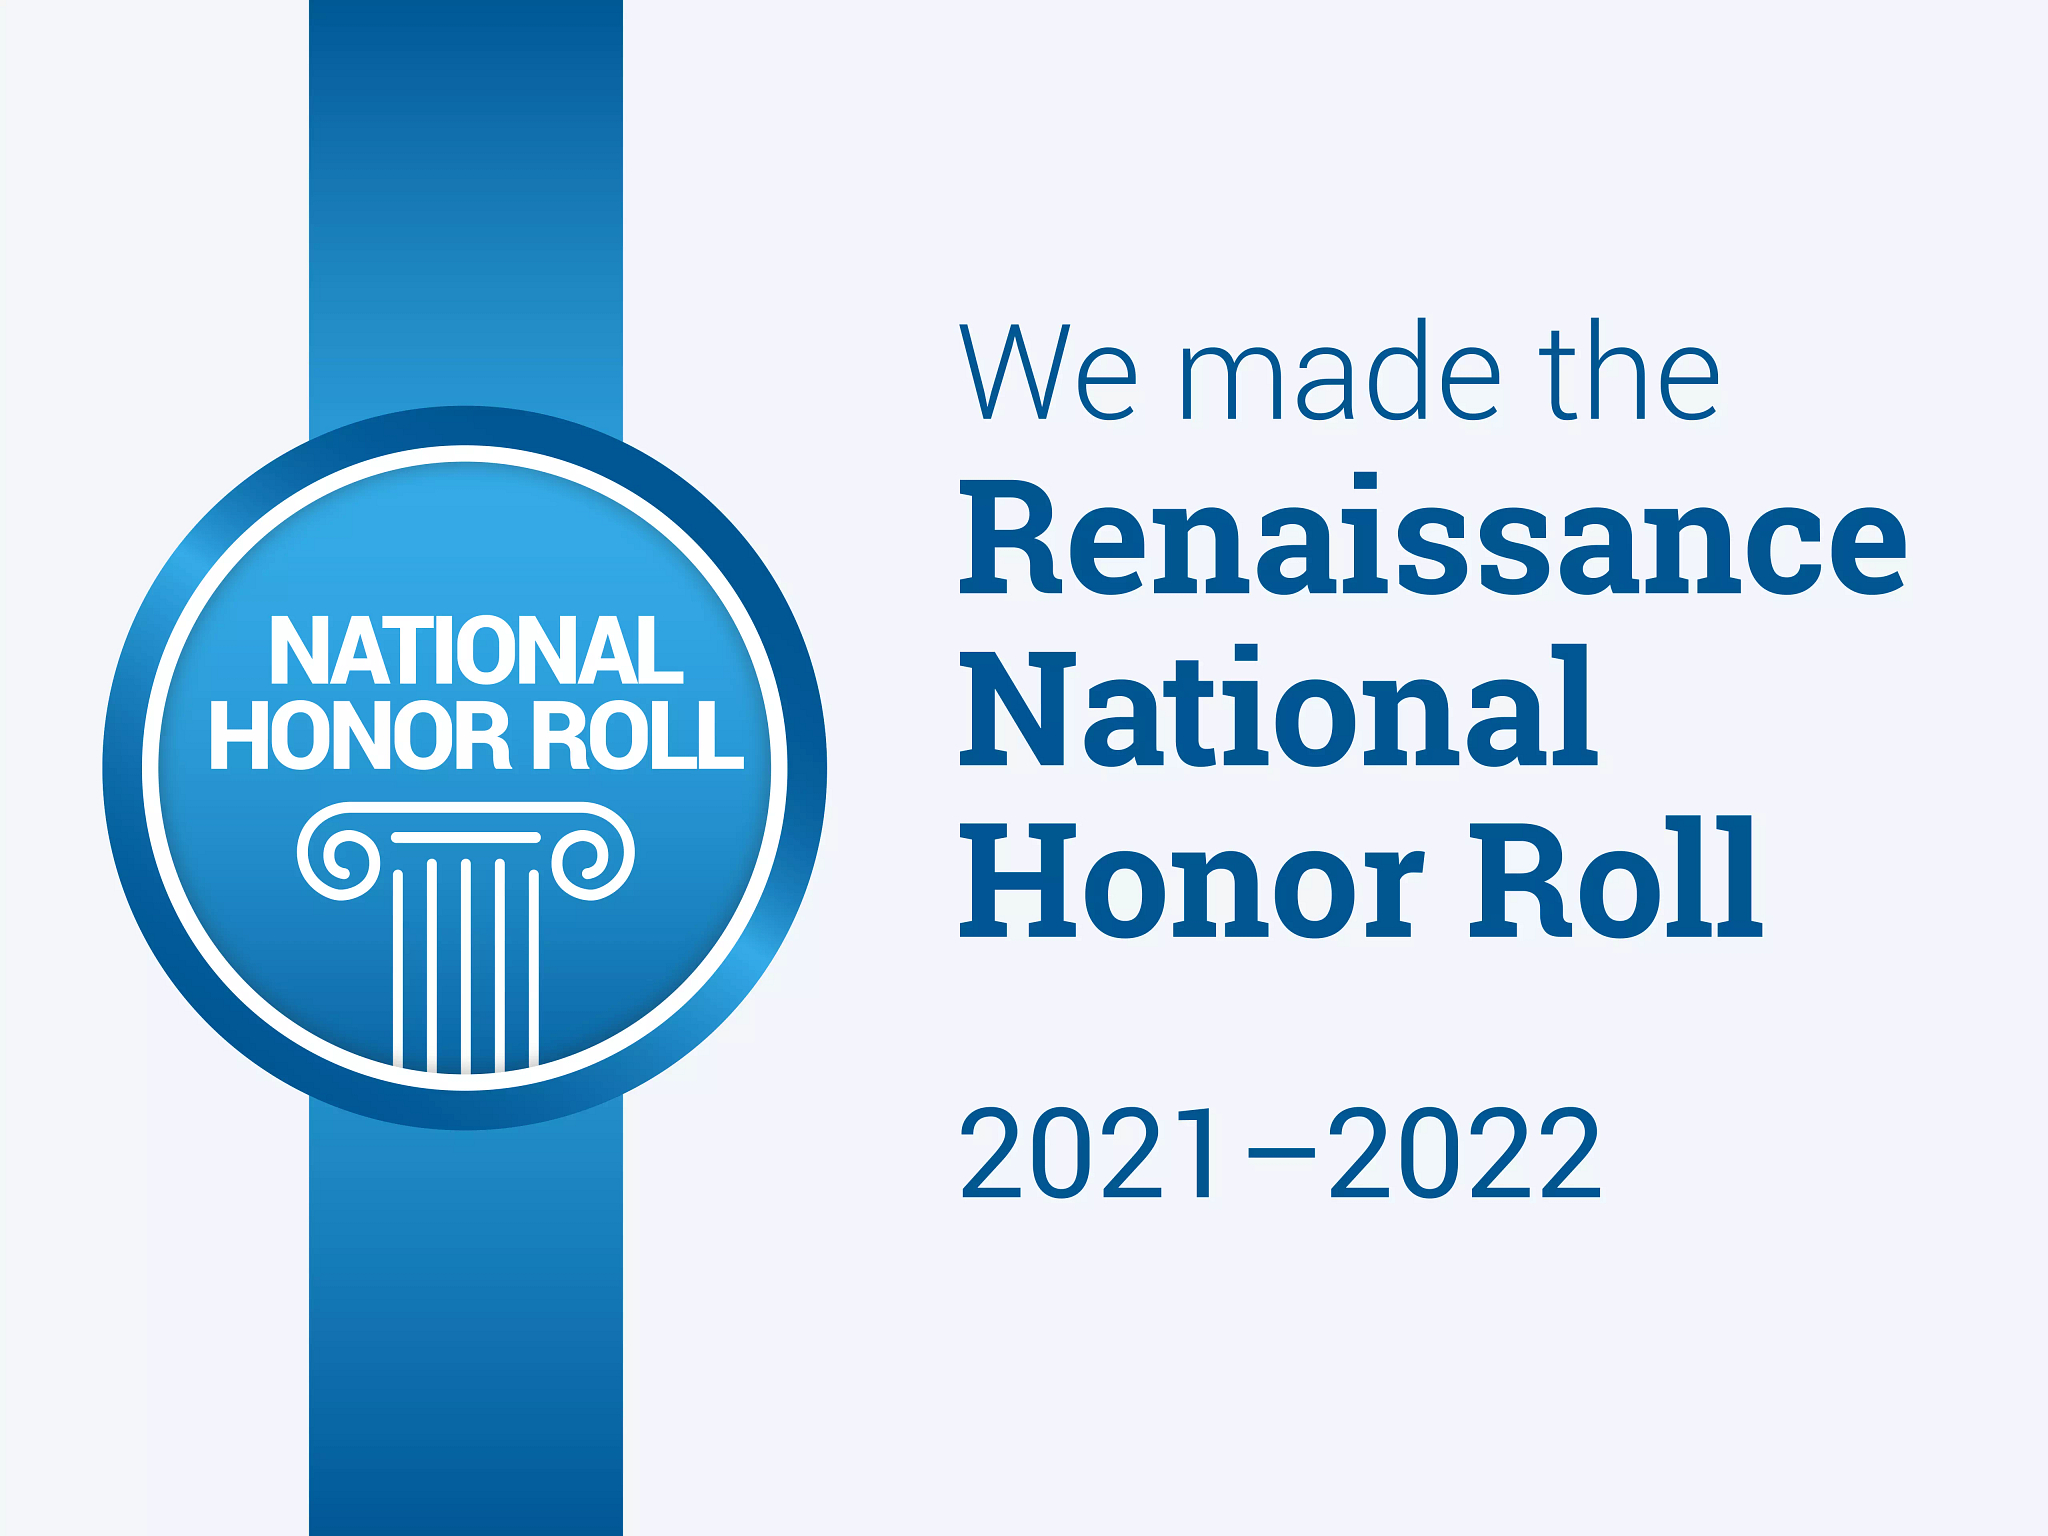 150735 Renaissance National Honor Roll Social Images_2.ai